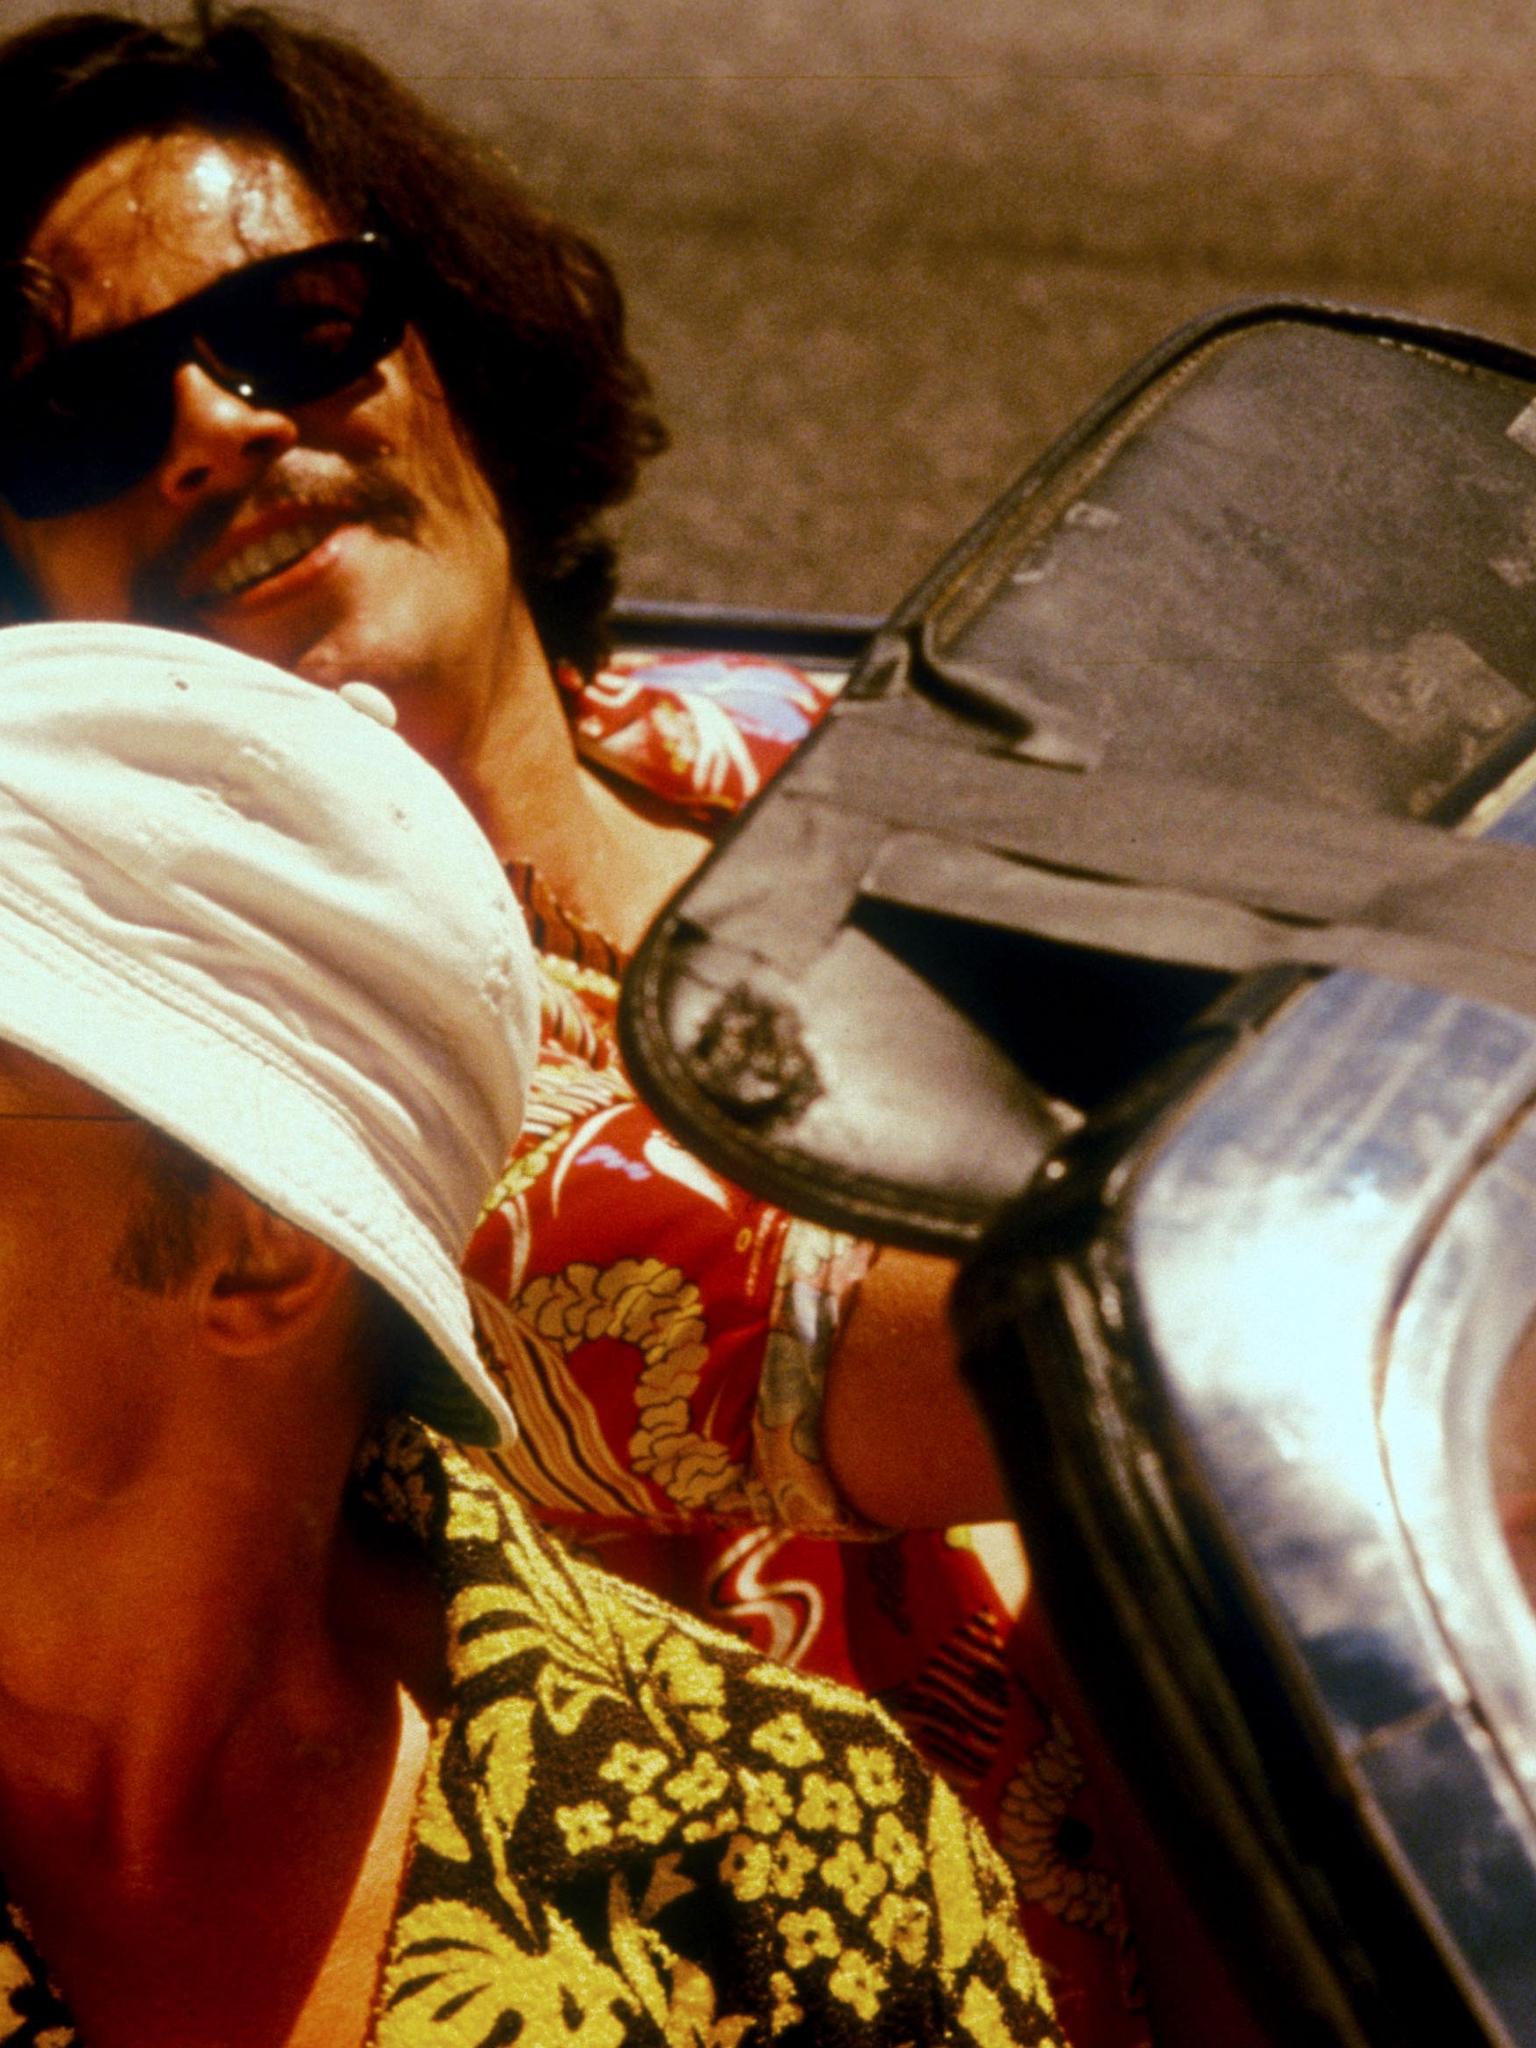 Free Download Fear And Loathing In Las Vegas Full Hd Wallpaper And